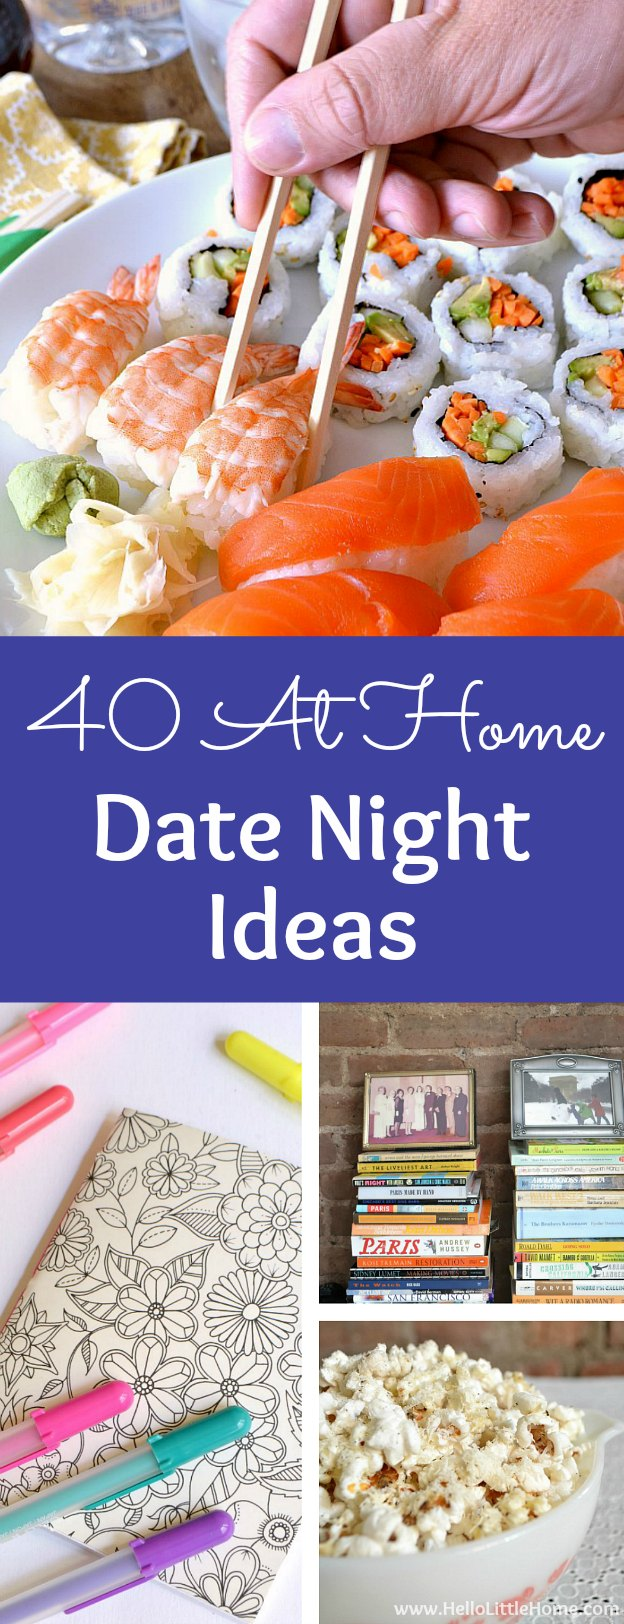 40 Easy At Home Date Night Ideas! Save a little money and plan a creative, unique, and romantic stay at home date night! Perfect for married couples, for boyfriends and girlfriends, or any relationship. Skip the babysitter, put the kids to bed, and try these fun and affordable date night ideas! Great for a last minute, stay in date on a budget! | Hello Little Home #datenight #dateideas #datenightideas #athomedatenigh #romantic #cheapdateideas #date